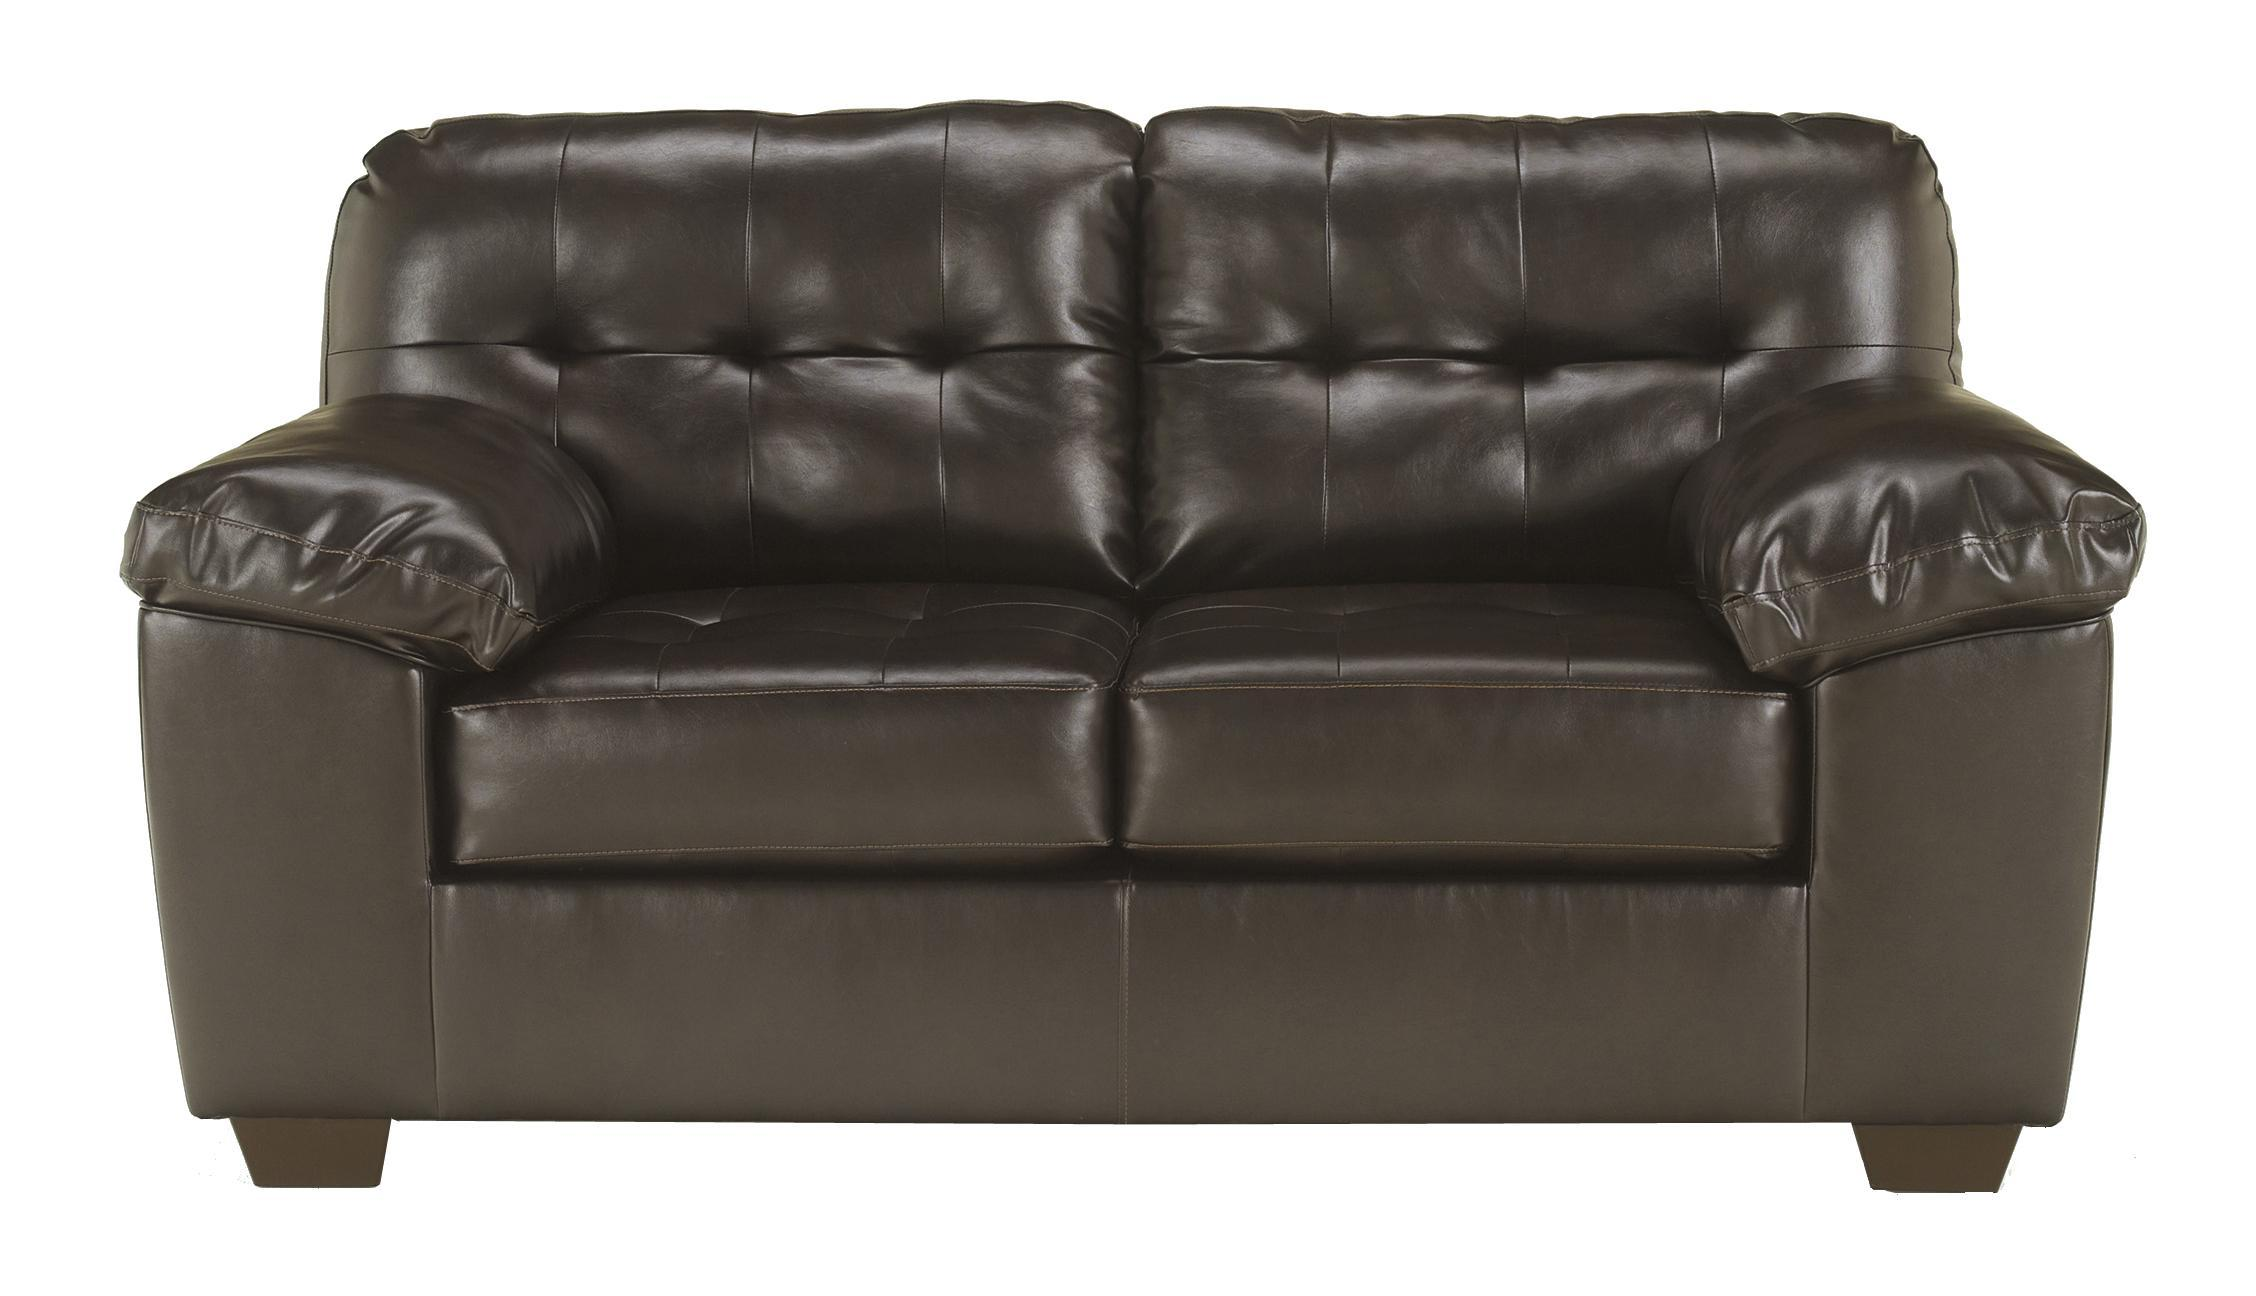 Living Room Recliners Ashley Signature Eclipse Power